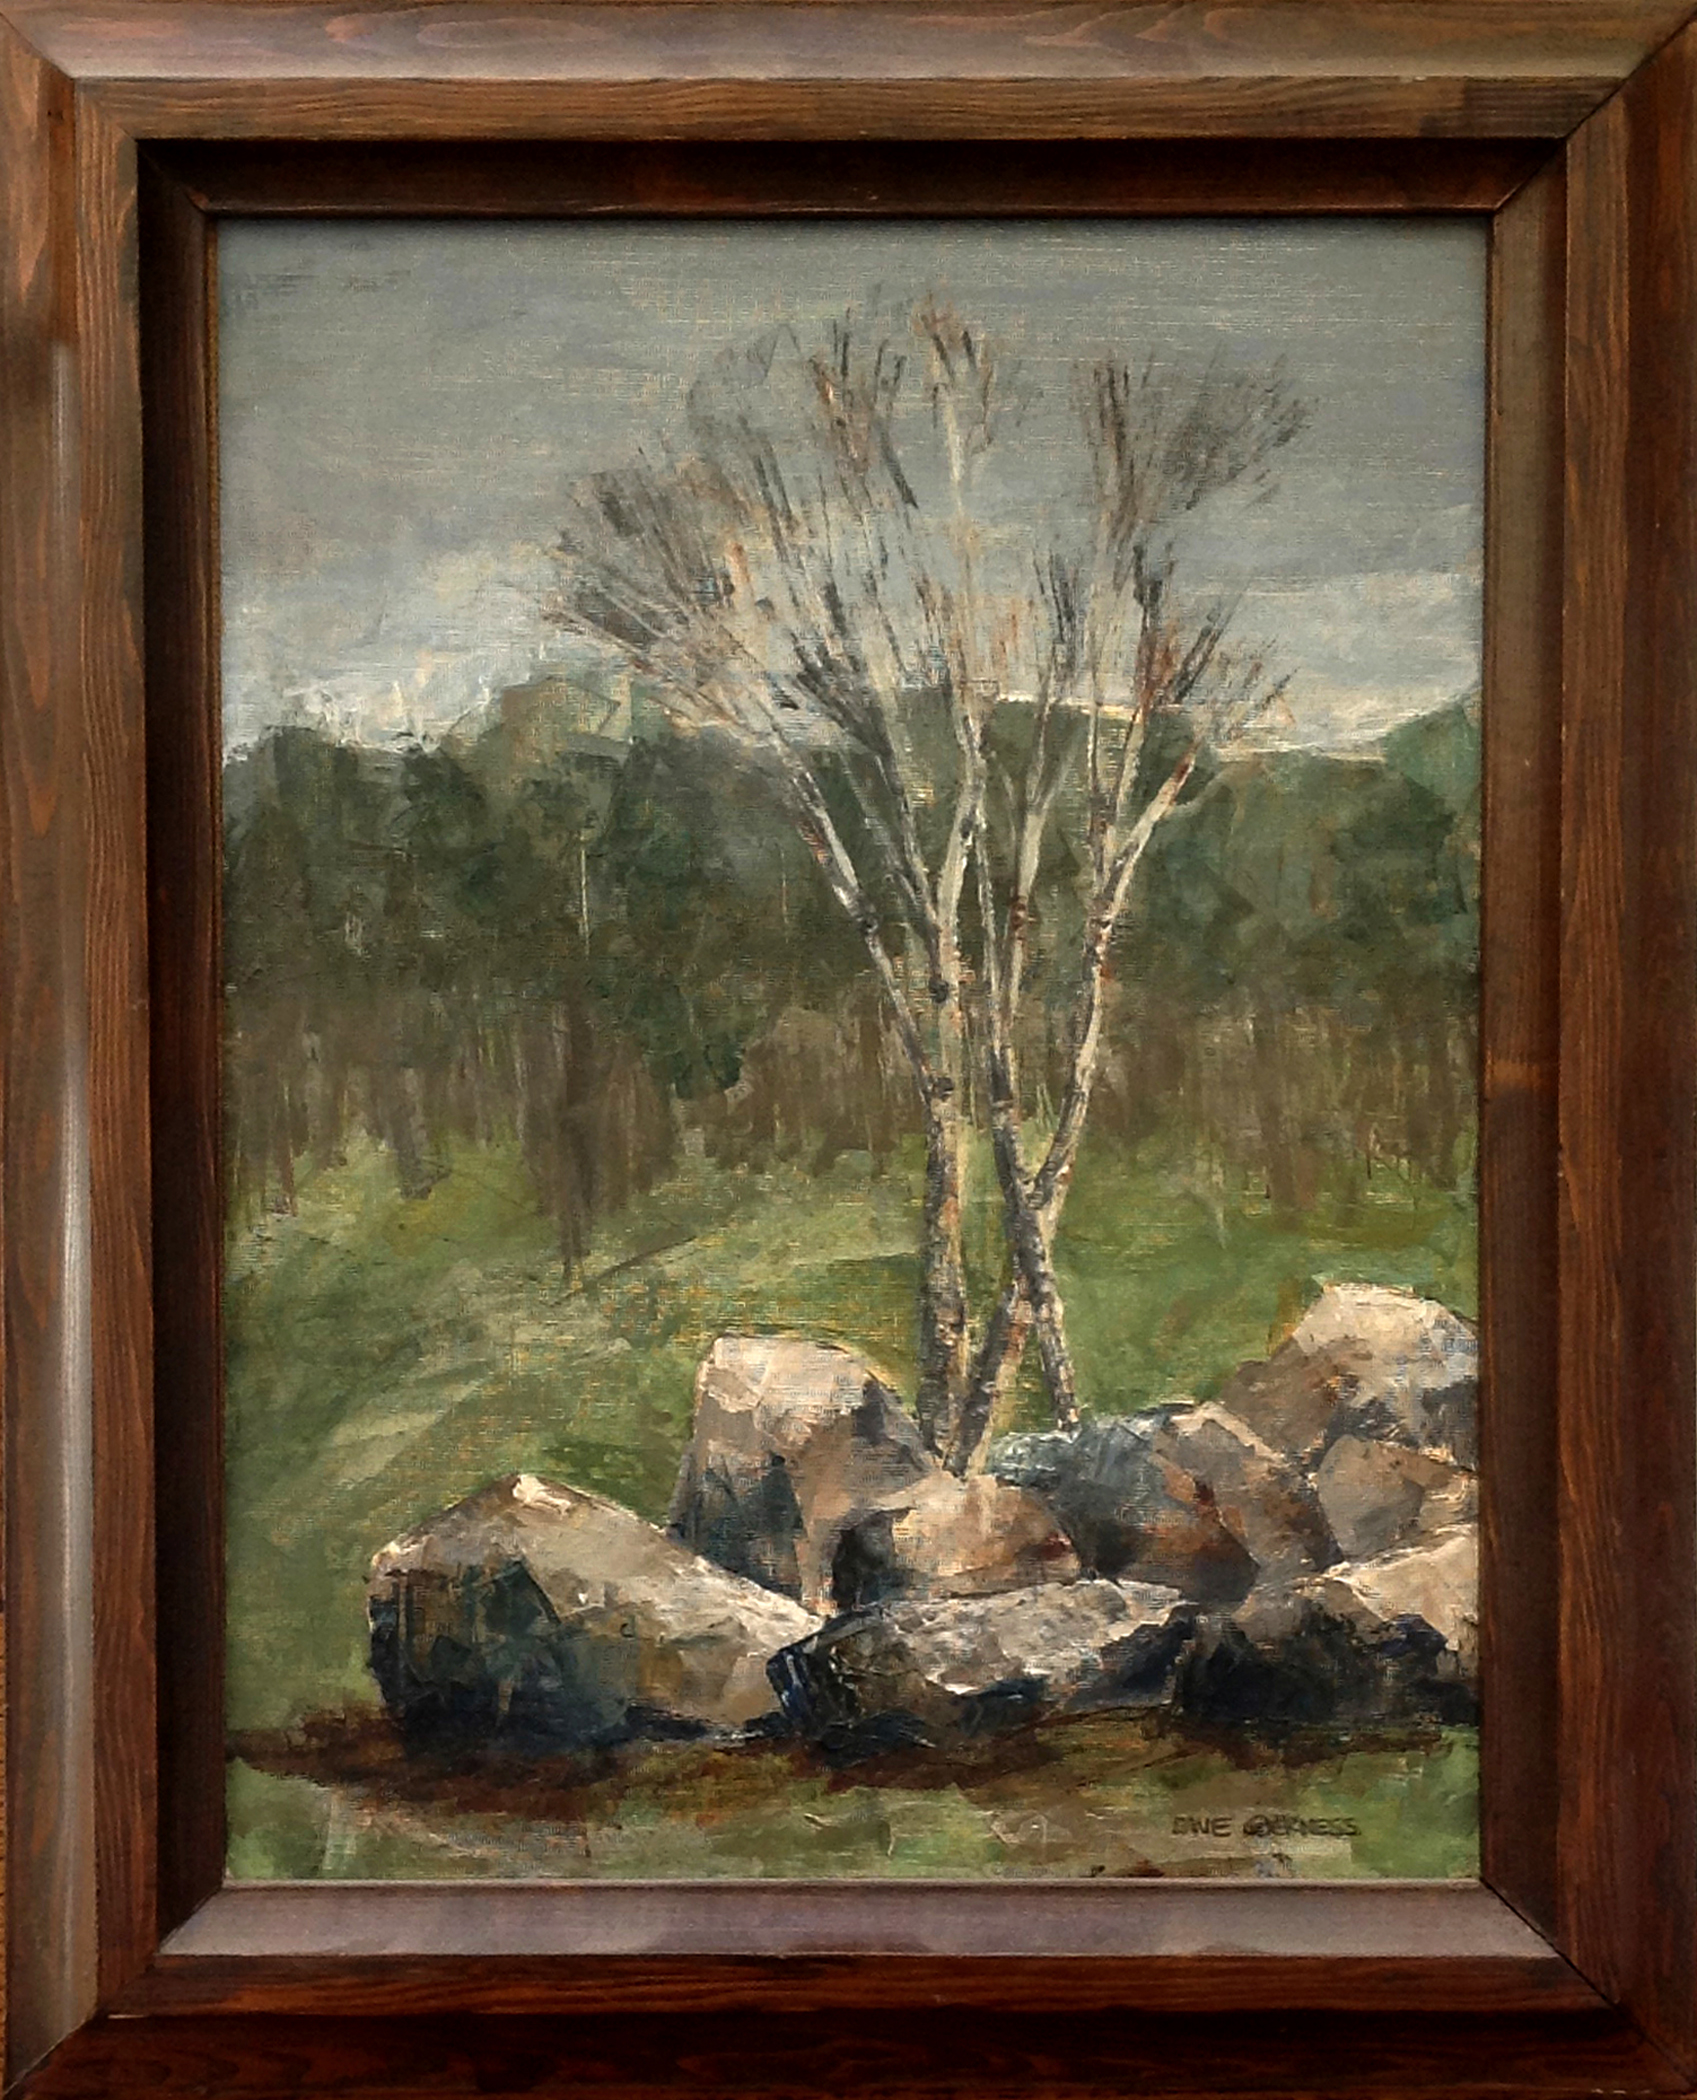 Birches (Oil Painting, 1971)